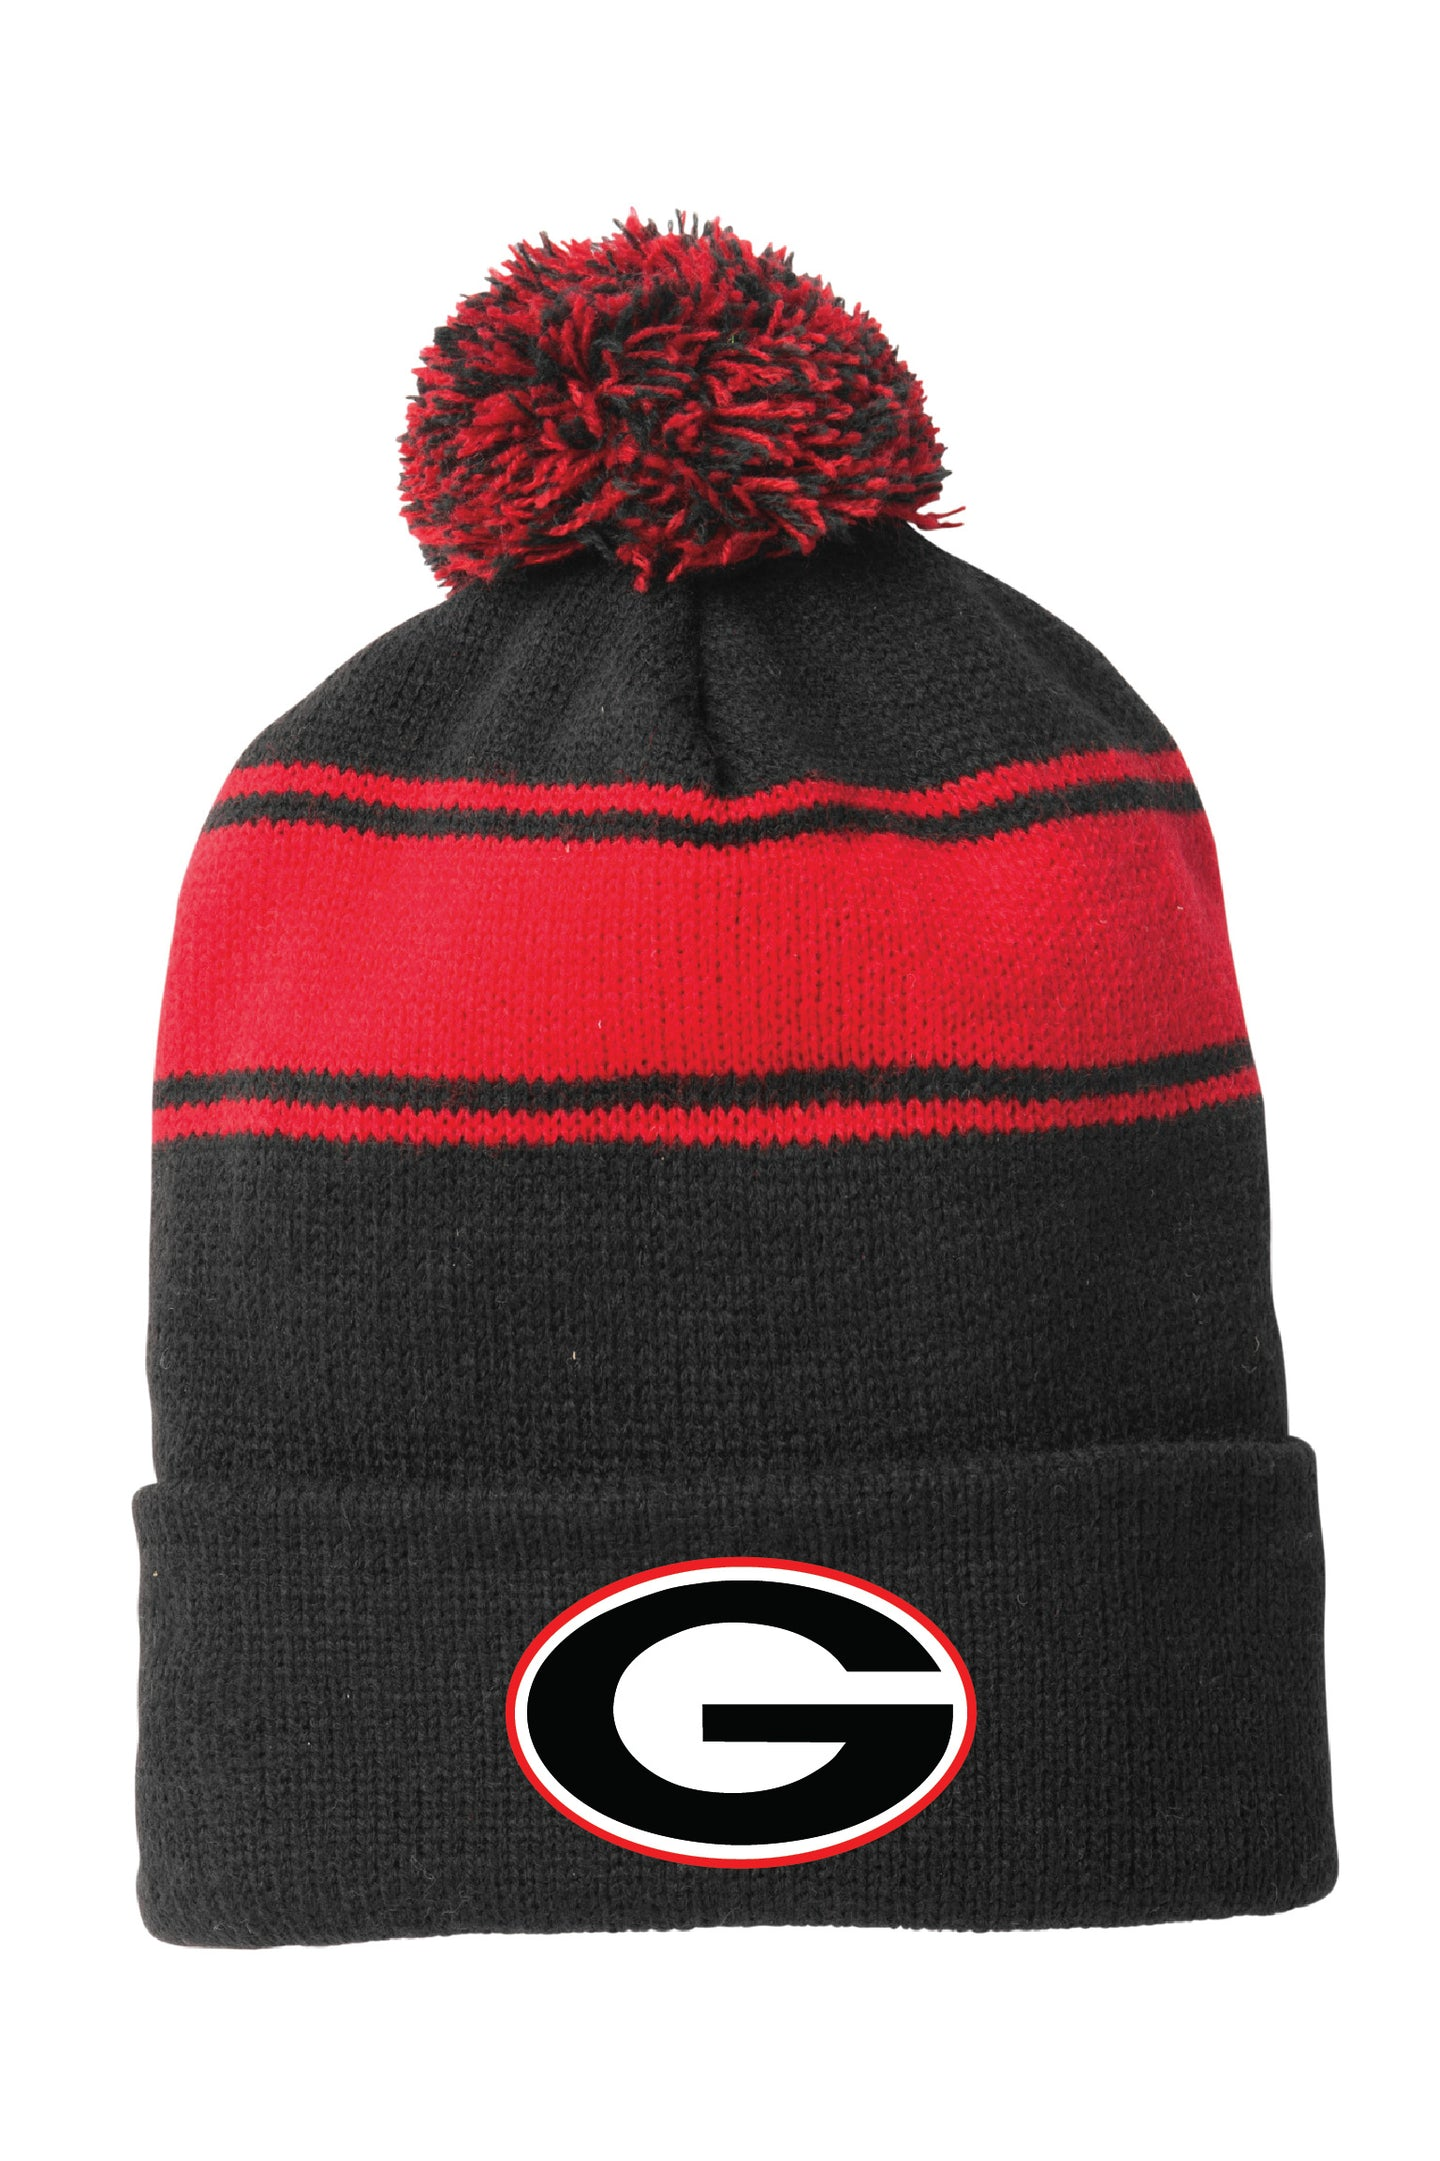 Glenbard East Athletics Pom Beanie